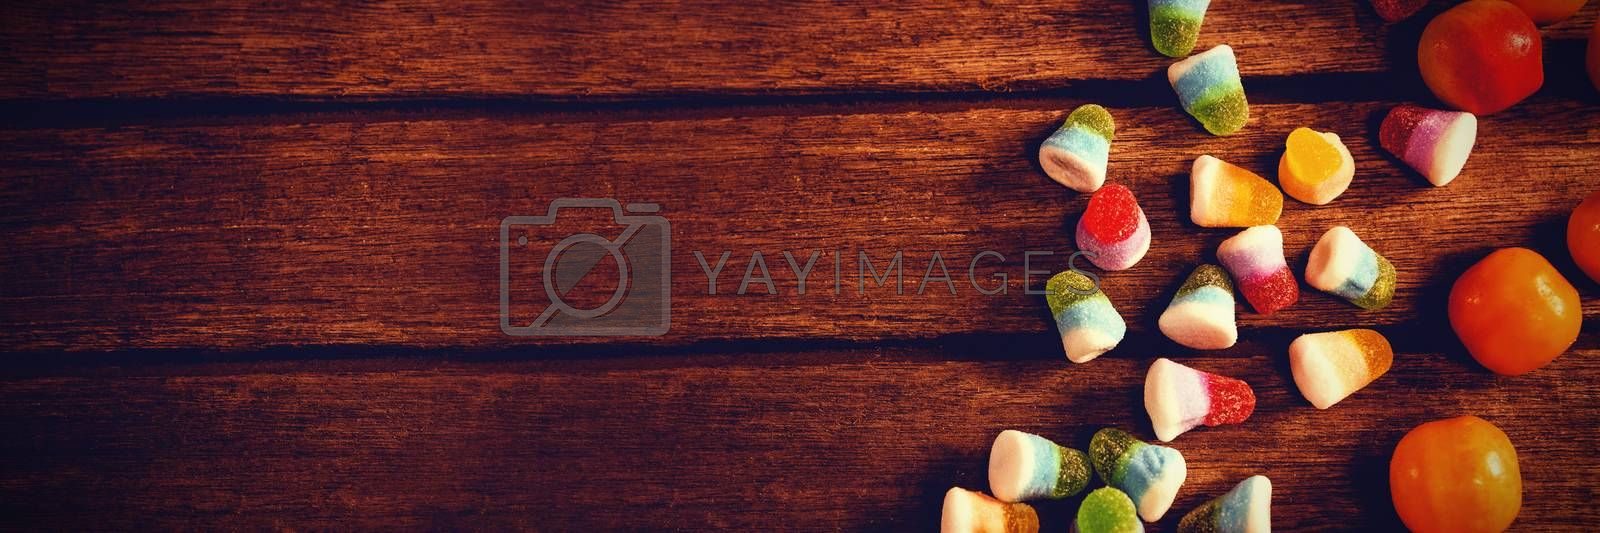 Overhead view of colorful sweet food on wooden table